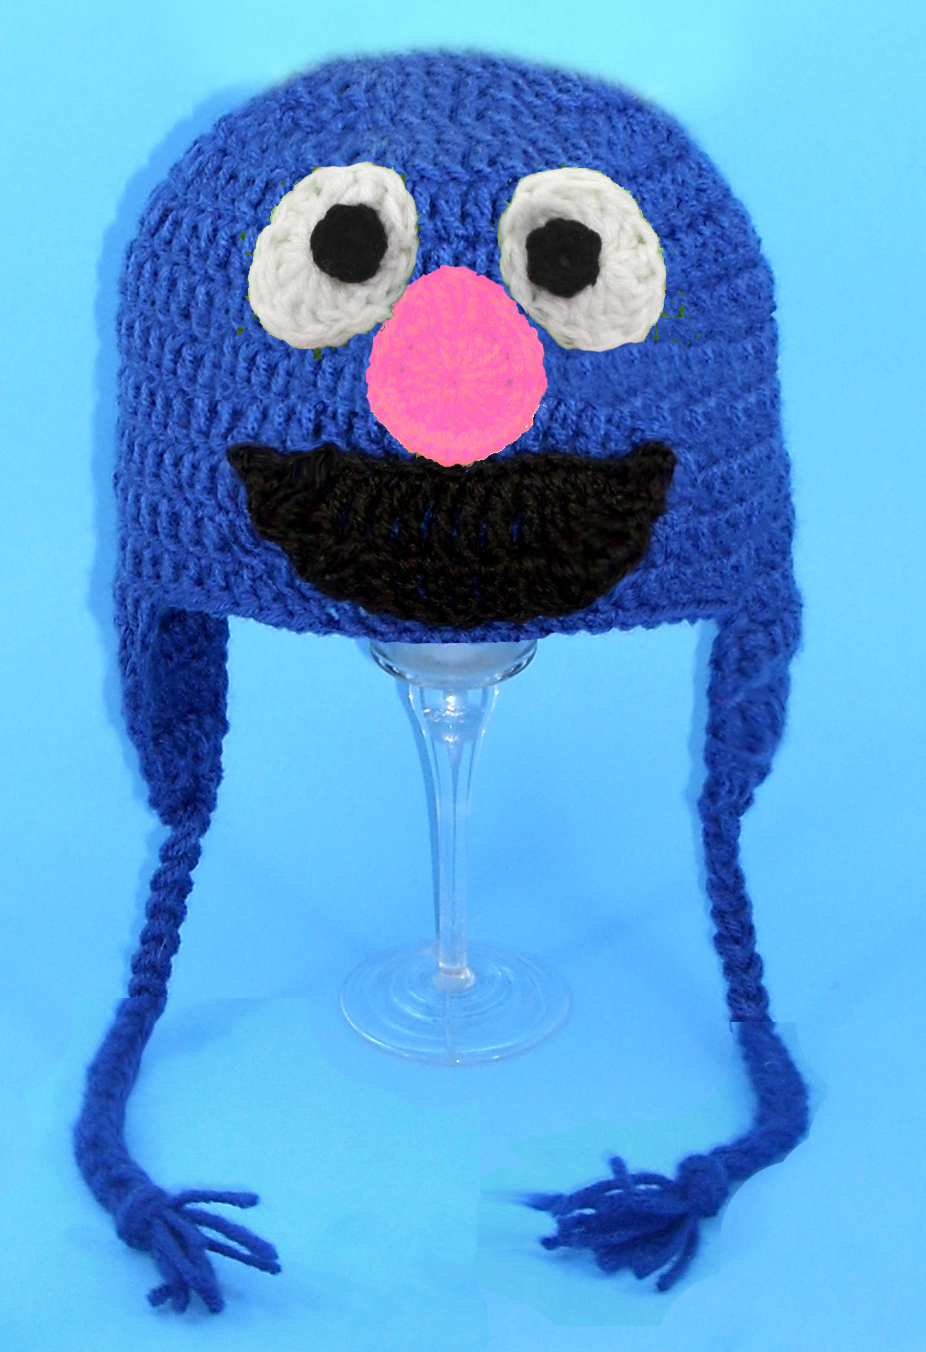 Grover Monster Earflap Hat from Sesame Street